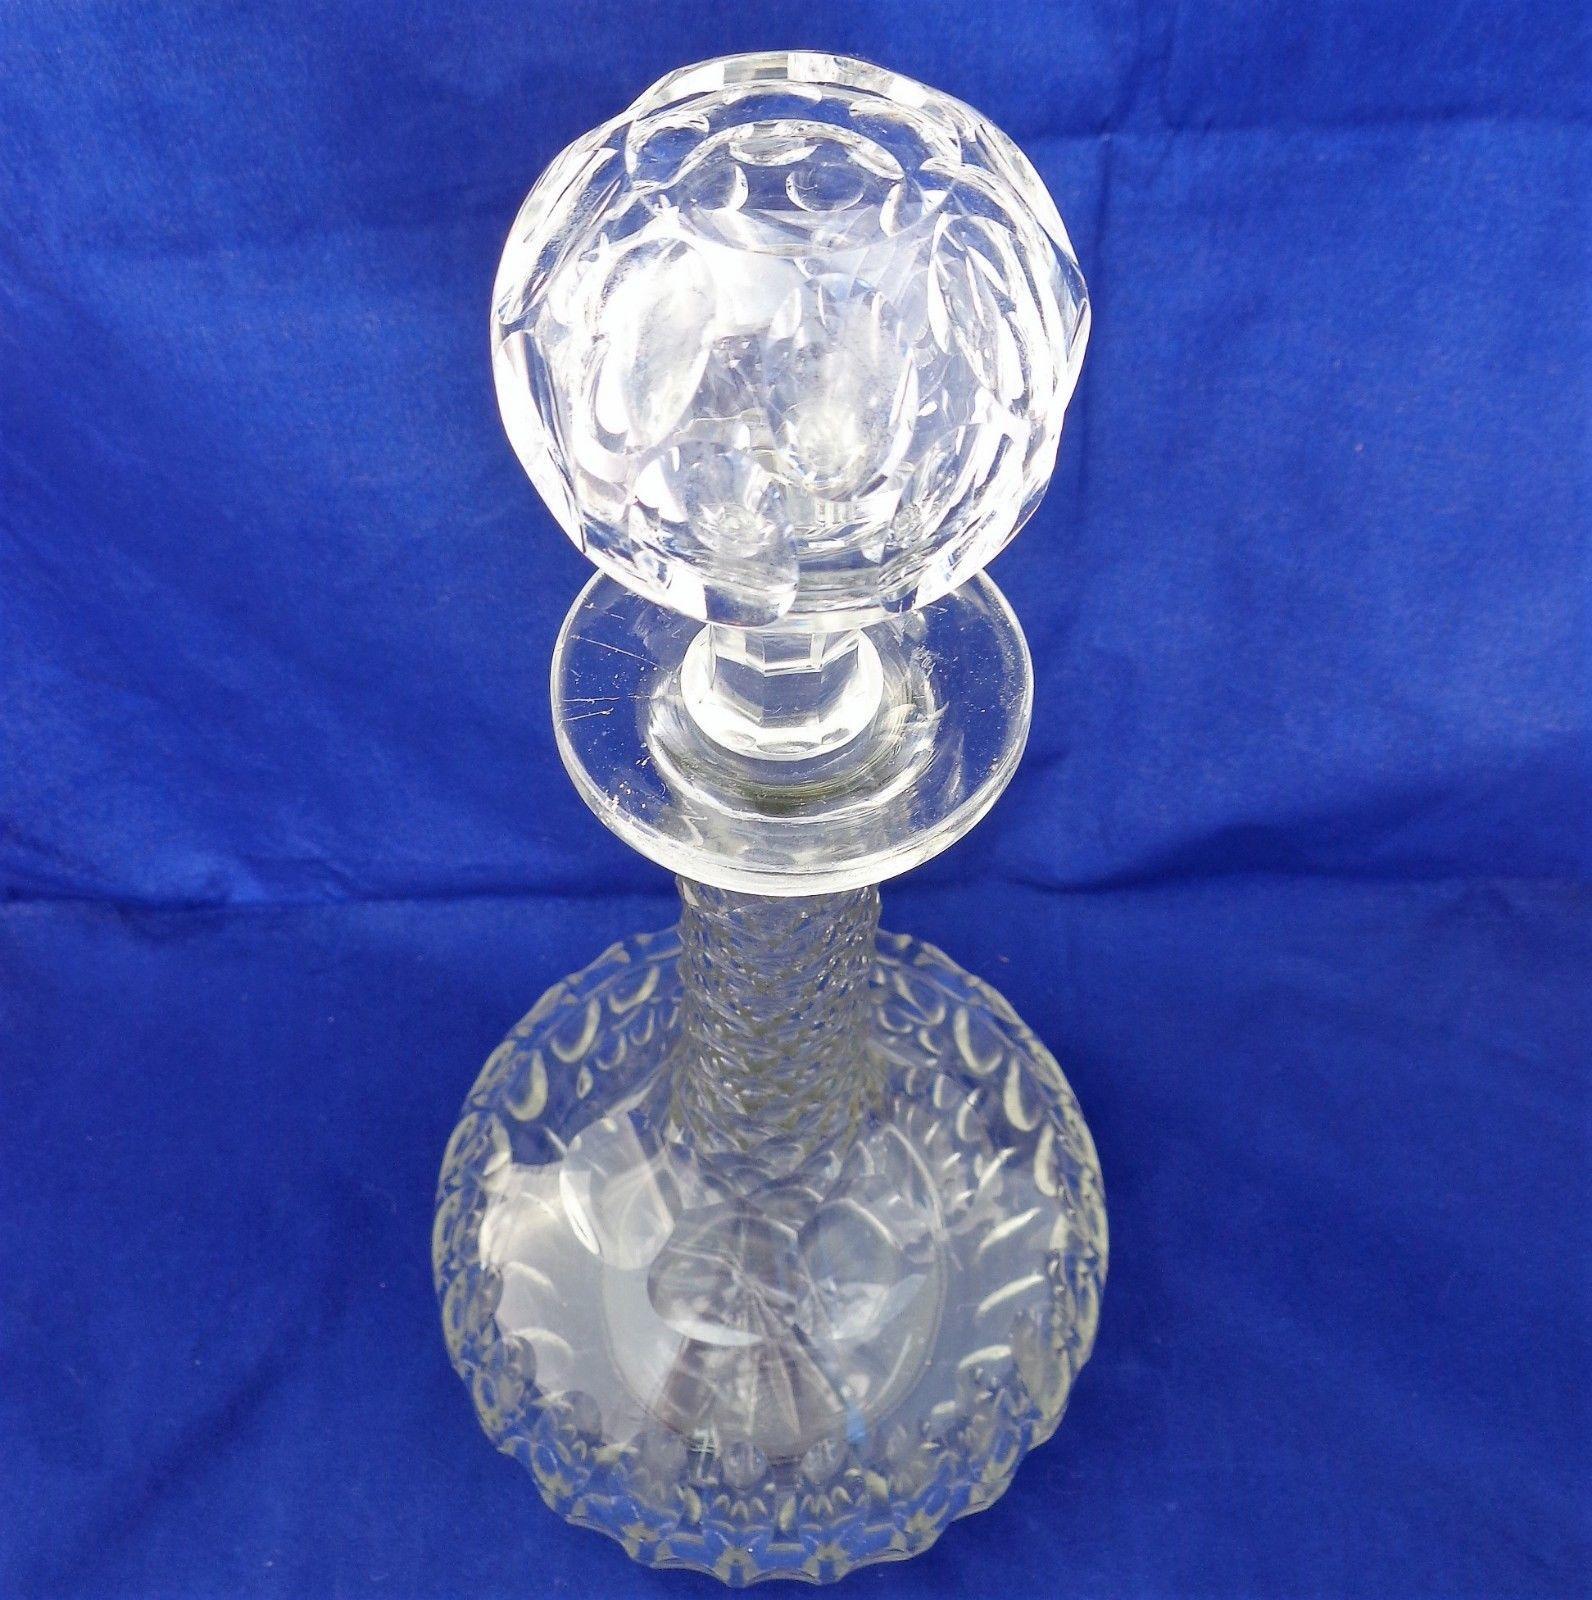 Antique Victorian Cut Glass Shaft and Globe Decanter with Faceted Stem c 1880